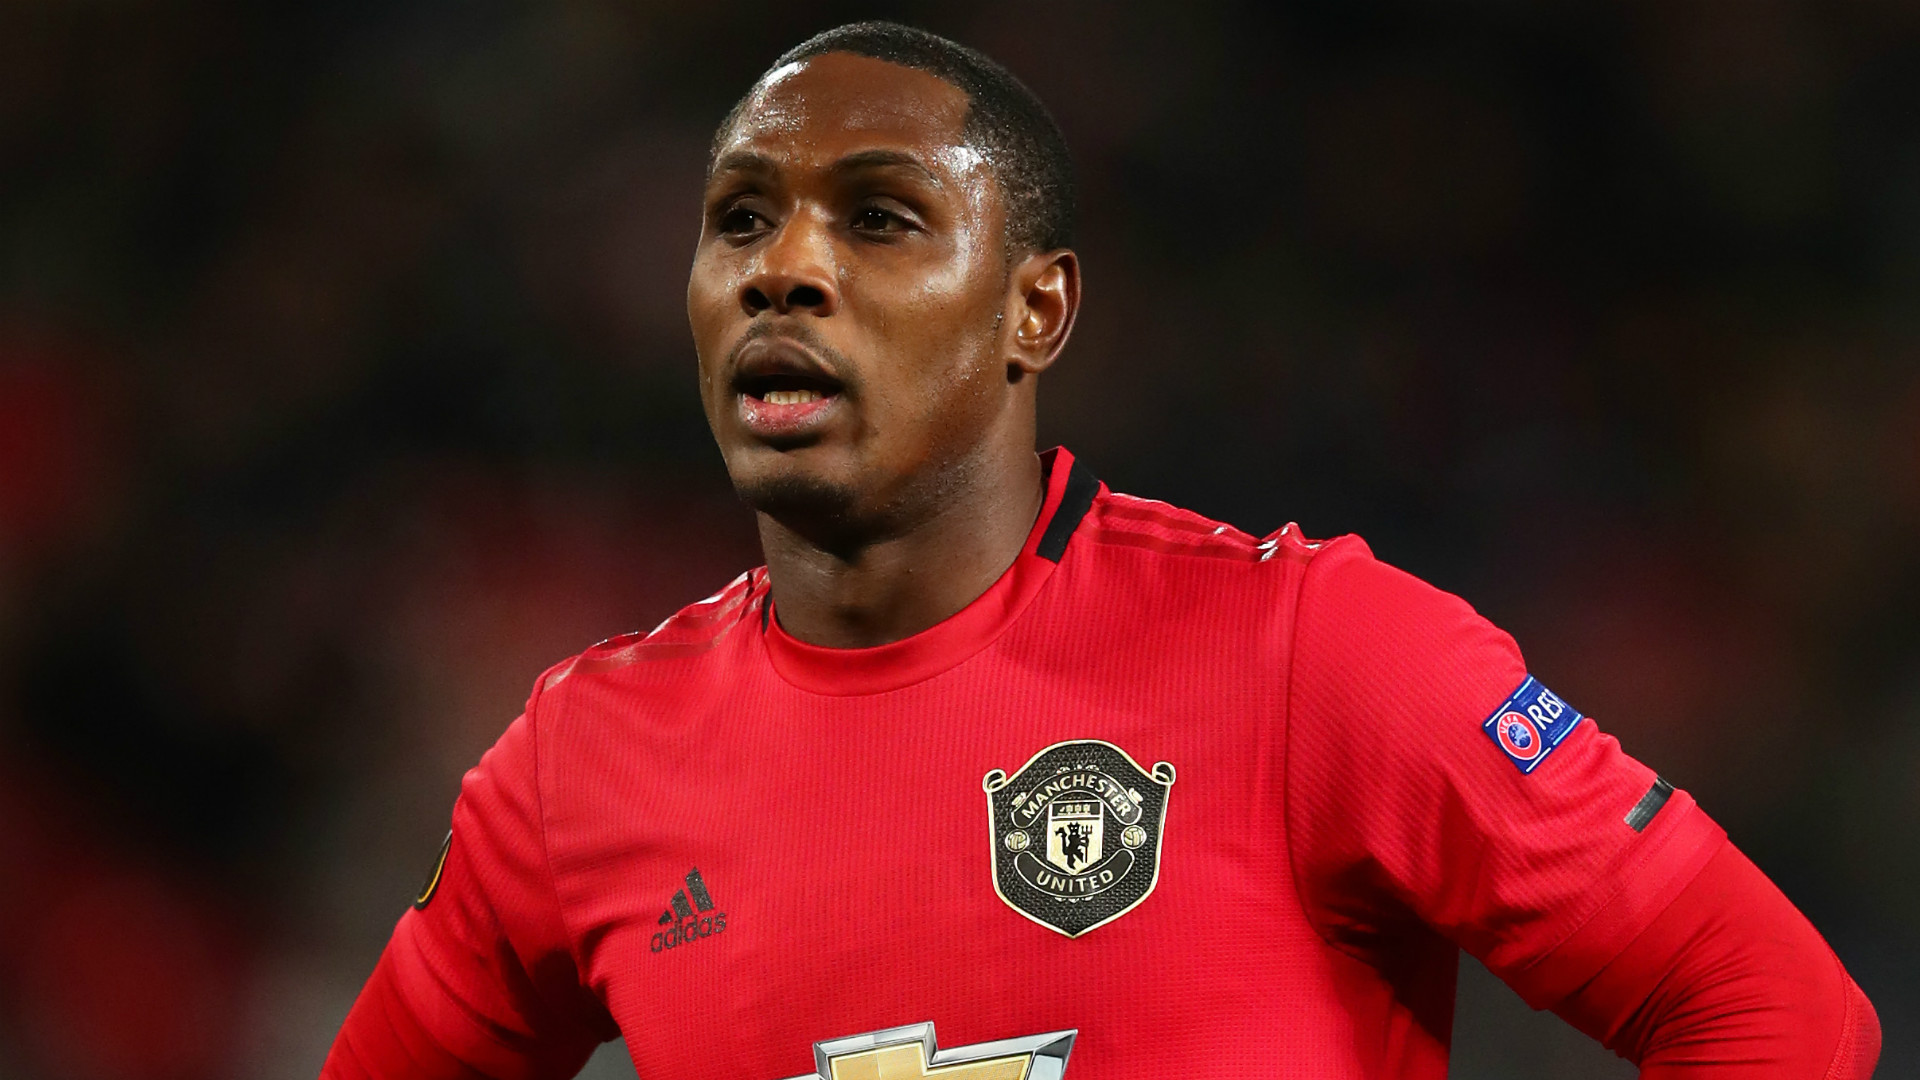 Coronavirus: Manchester United star Ighalo is officially bored